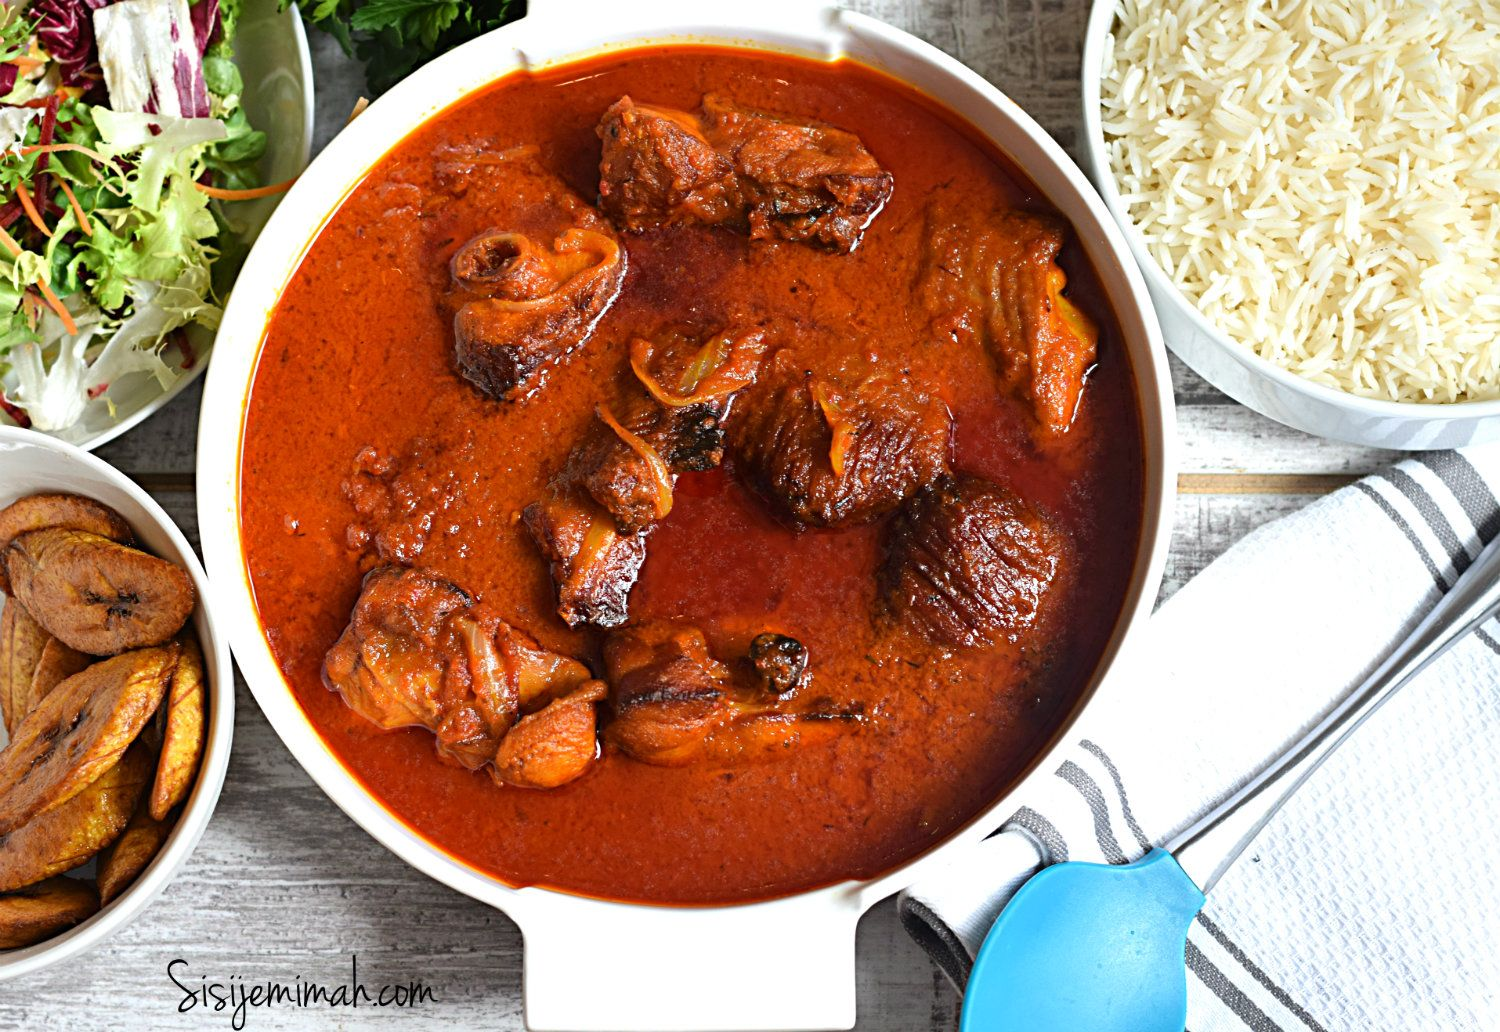 Nigerian Smoked Turkey Stew is a popular pepper/tomato